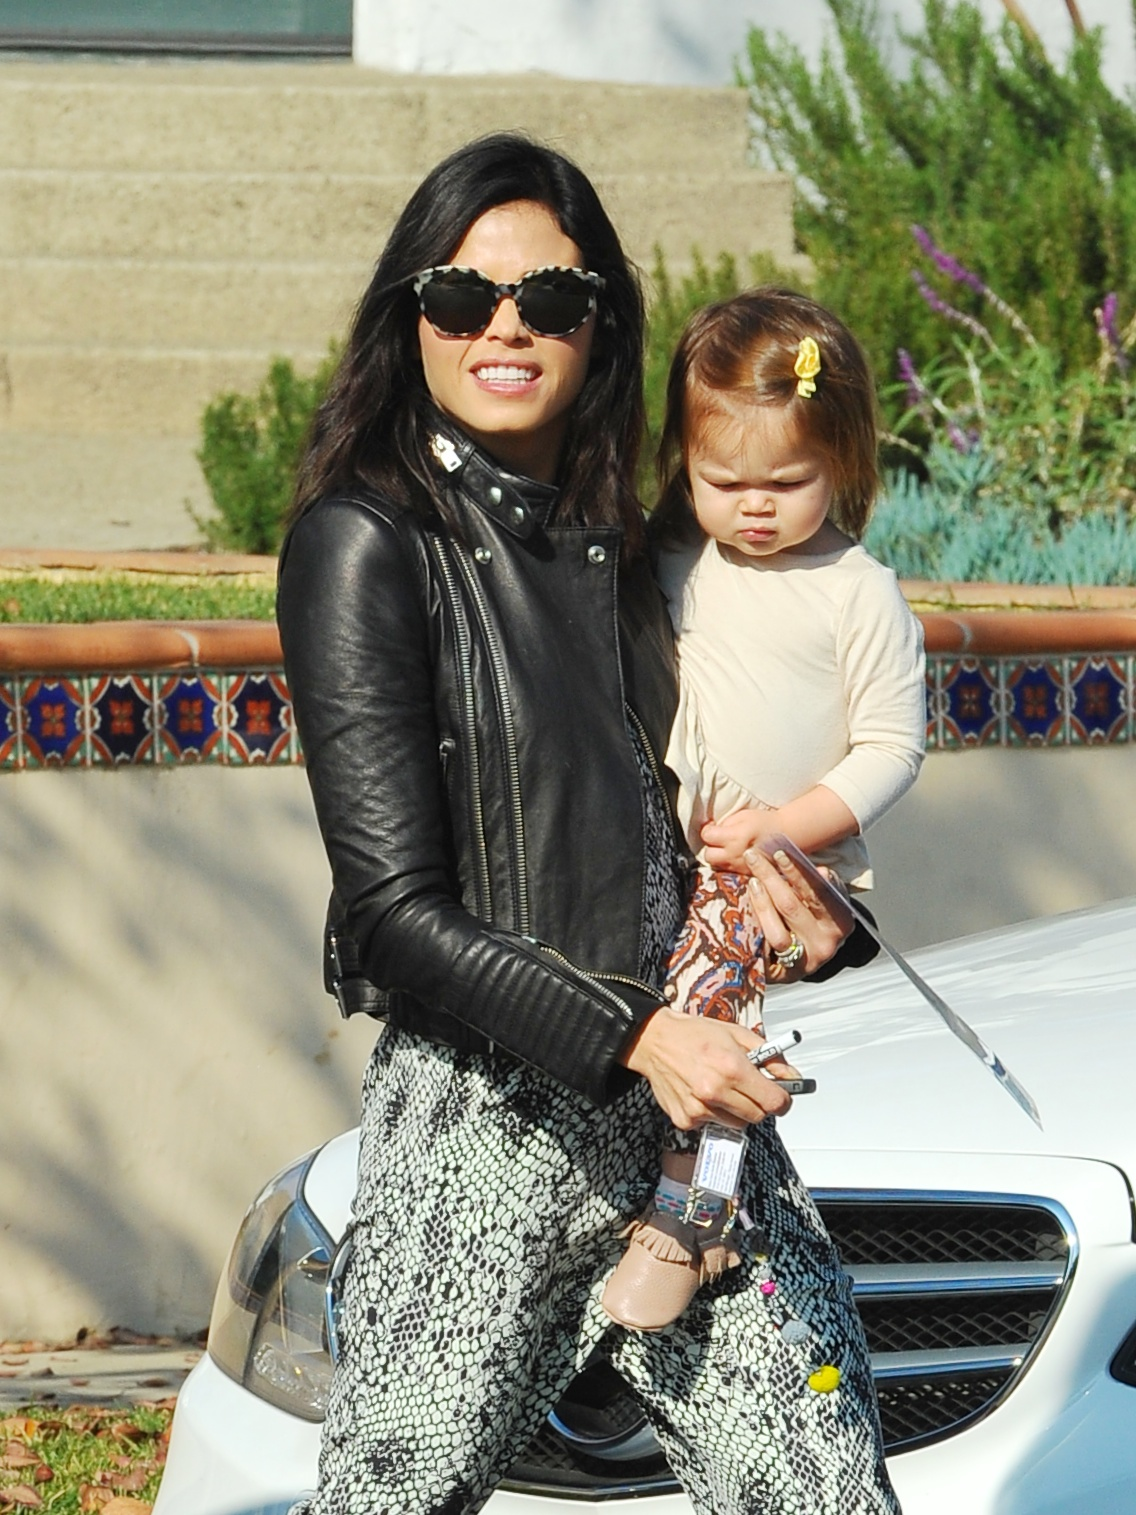 Jenna Dewan Tatum Takes Daughter Everly To A Playdate